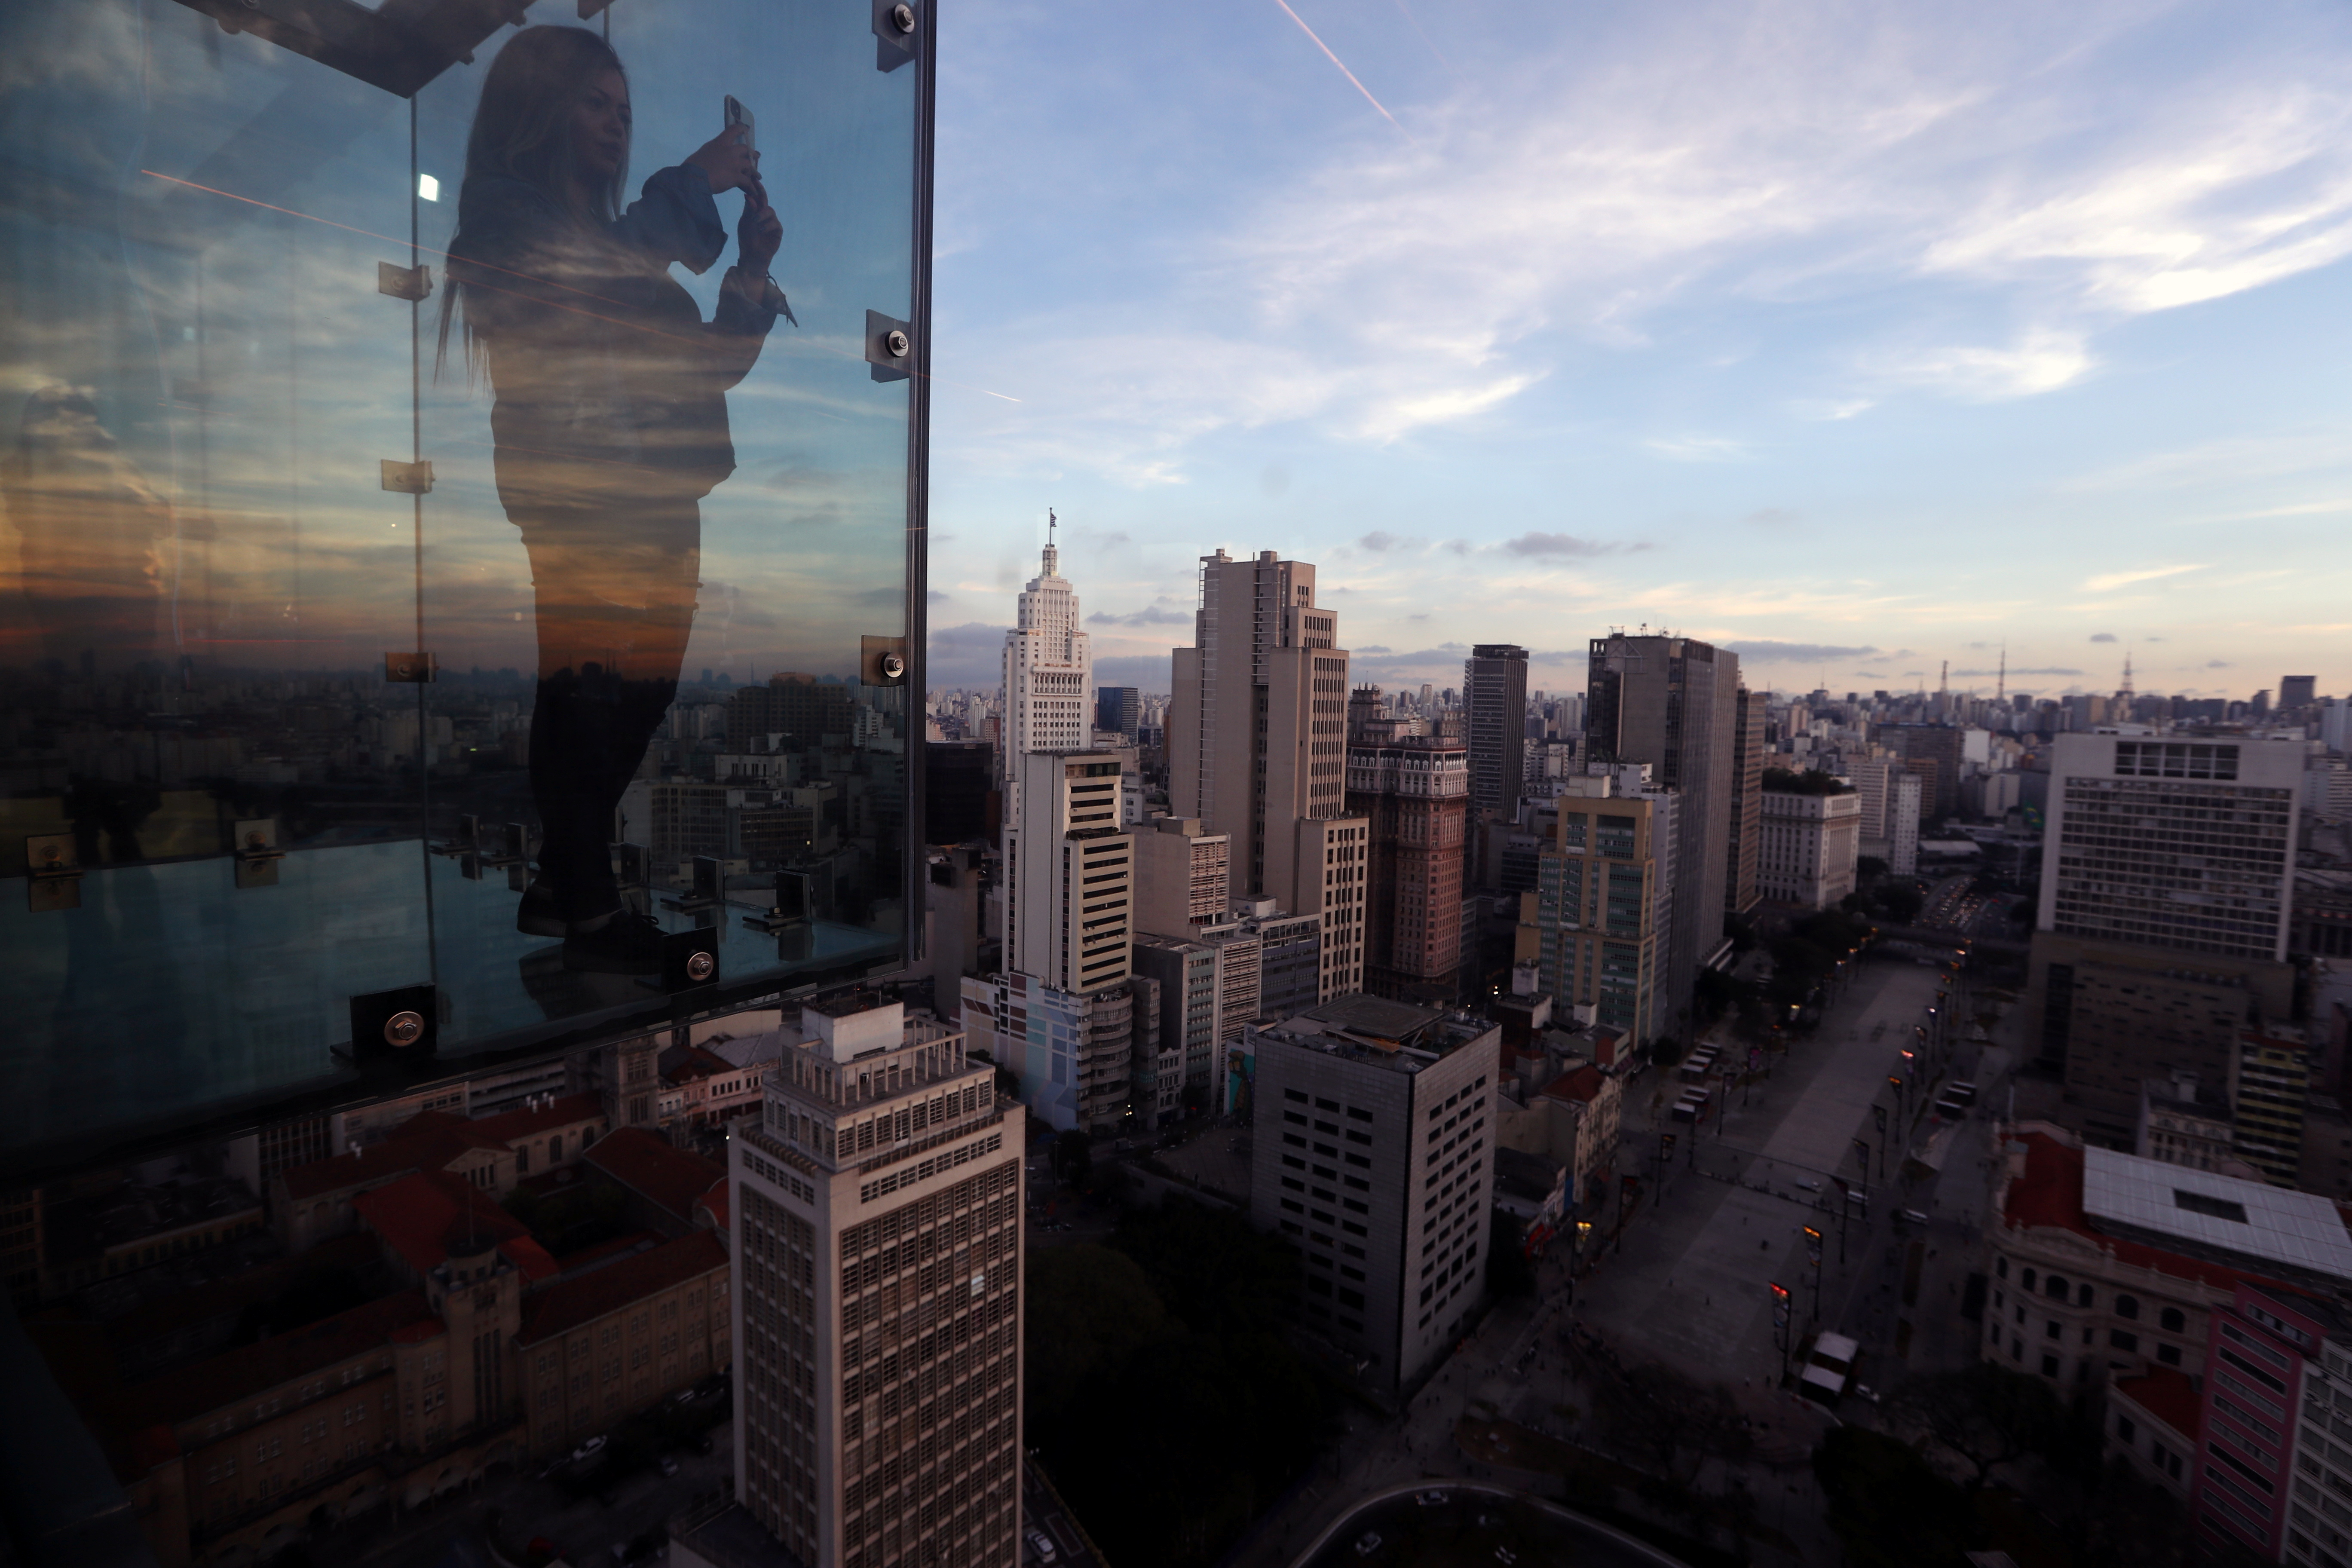 Influencer Julia Paiva takes a picture inside Sampa Sky, a reinforced glass box that protrudes beyond the building and allows to see not only the horizon, but also the ground below your feet, in downtown Sao Paulo, Brazil, August 3, 2021. REUTERS/Amanda Perobelli